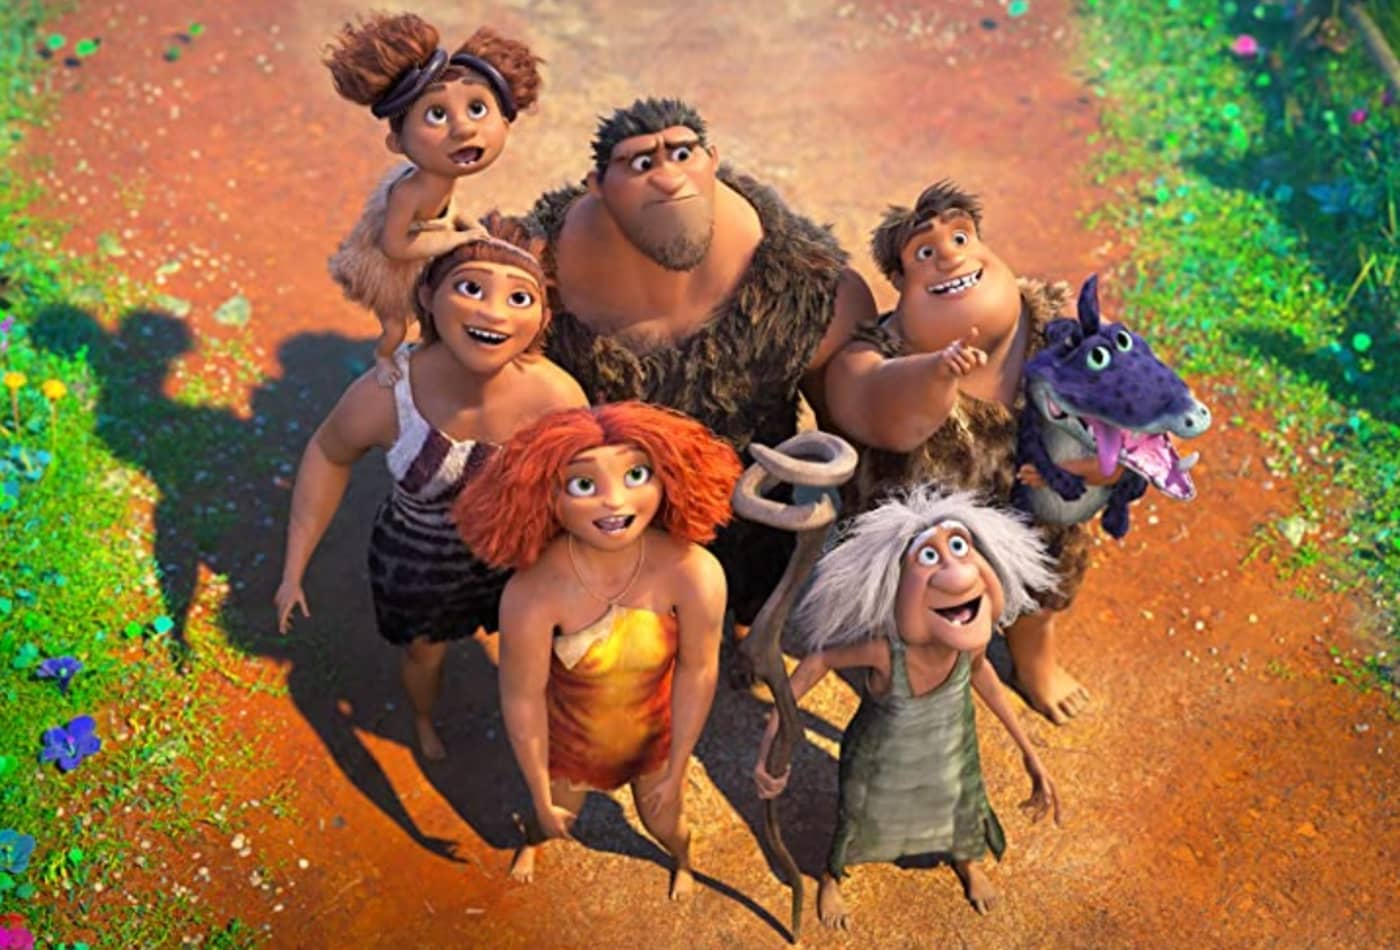 'The Croods: A New Age' will be a 'non-event' at the Thanksgiving box office, analysts say